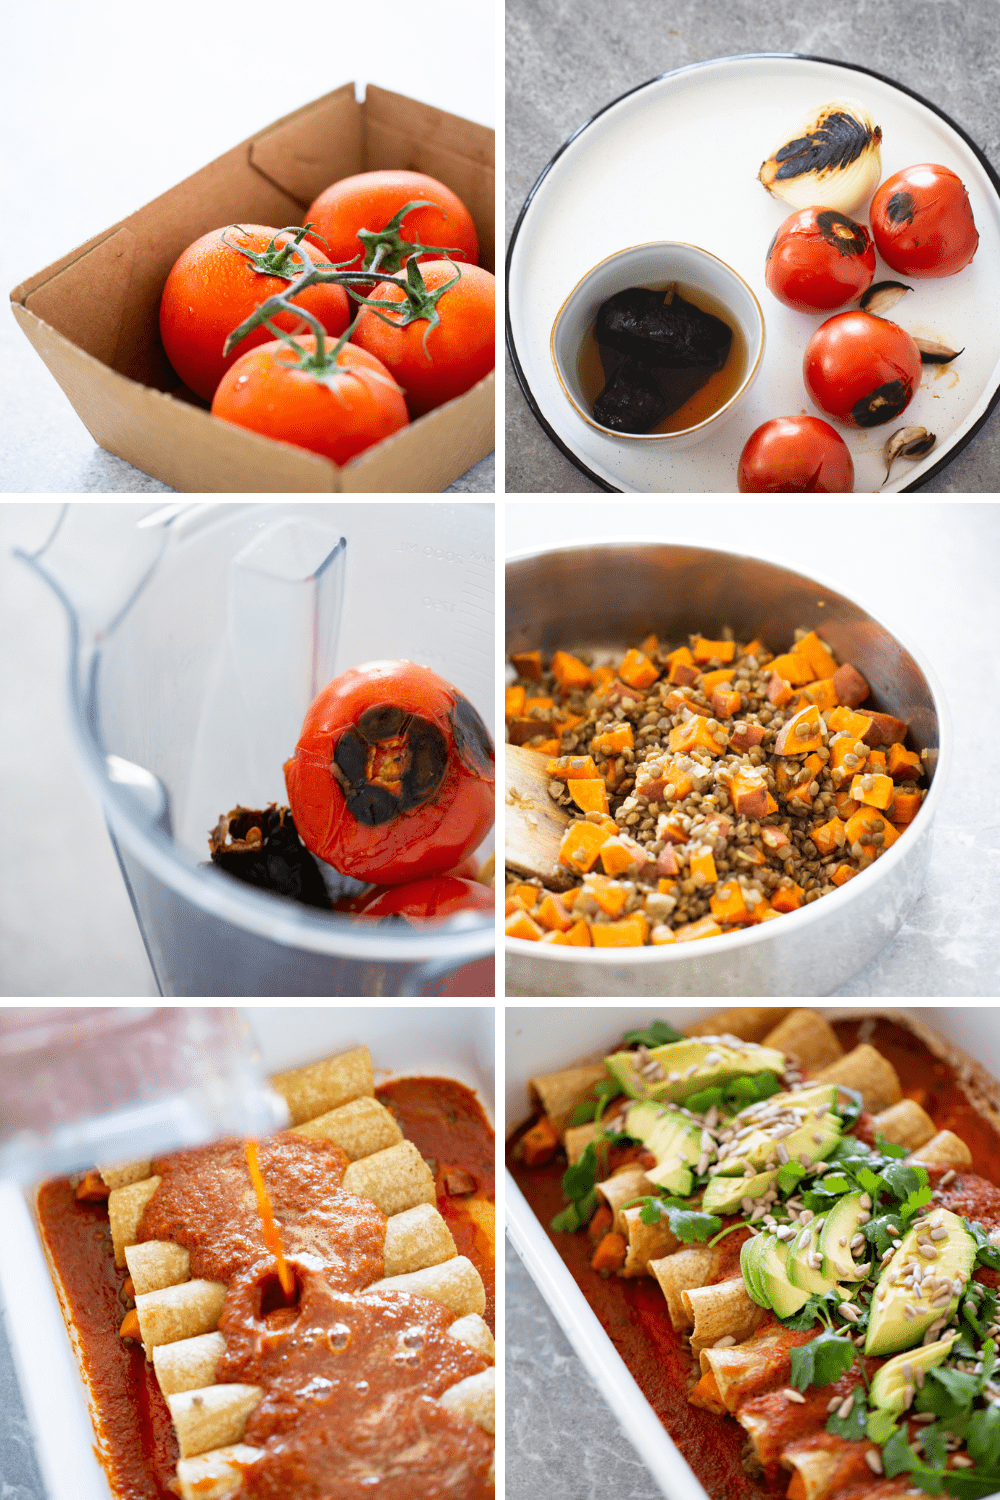 Step by step on how to make enchiladas